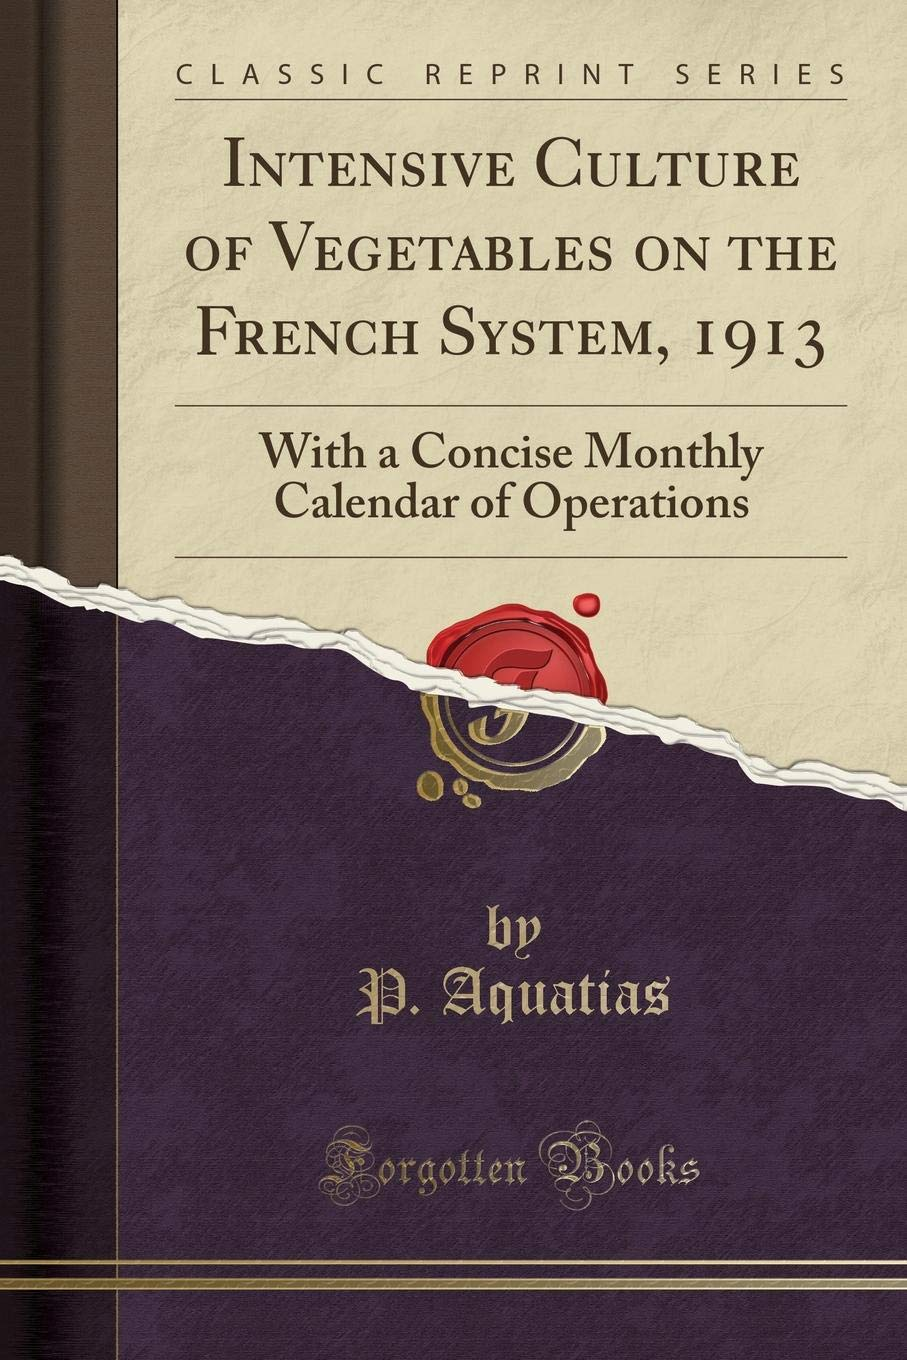 Download Intensive Culture of Vegetables on the French System, 1913: With a Concise Monthly Calendar of Operations (Classic Reprint) ebook